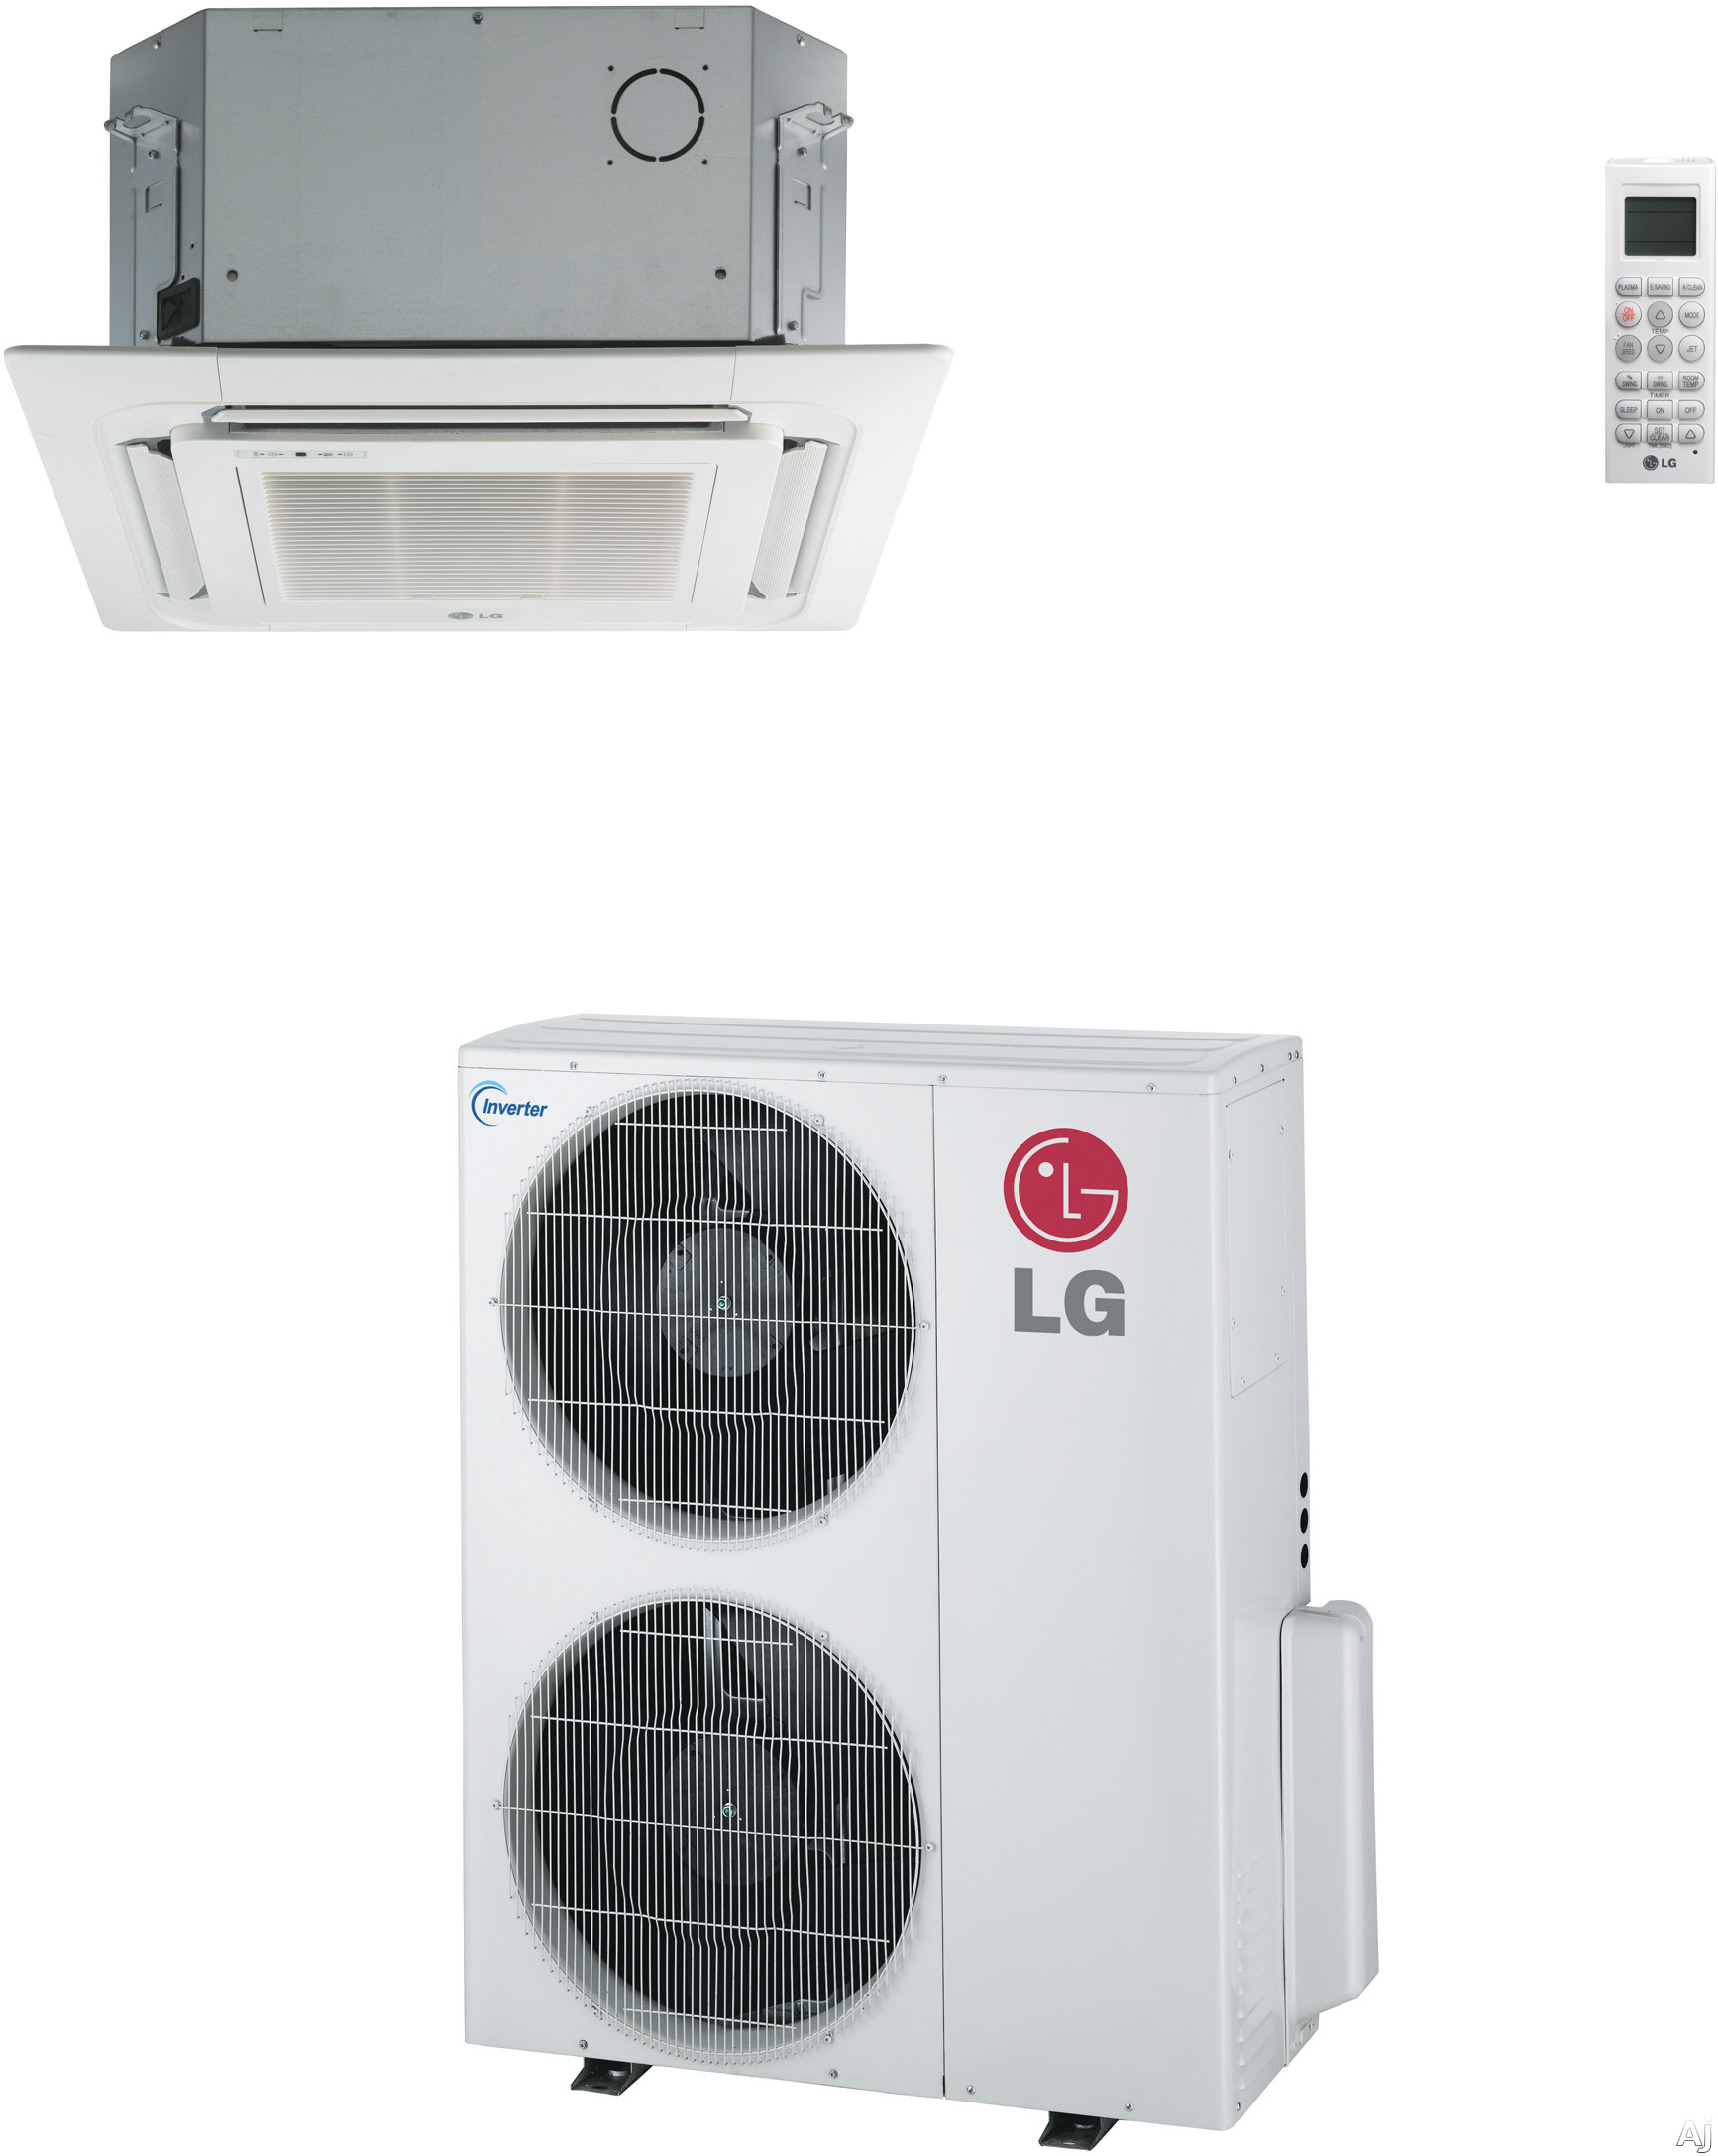 LG LC427HV 41,000 BTU Single Zone Ceiling Cassette Cool/Heat Pump Ductless Split System with Inverter, R-410A Refrigerant, 8.9 Energy Efficiency Ratio and Remote Controls (LCN427HV Indoor/LUU427HV Outdoor)